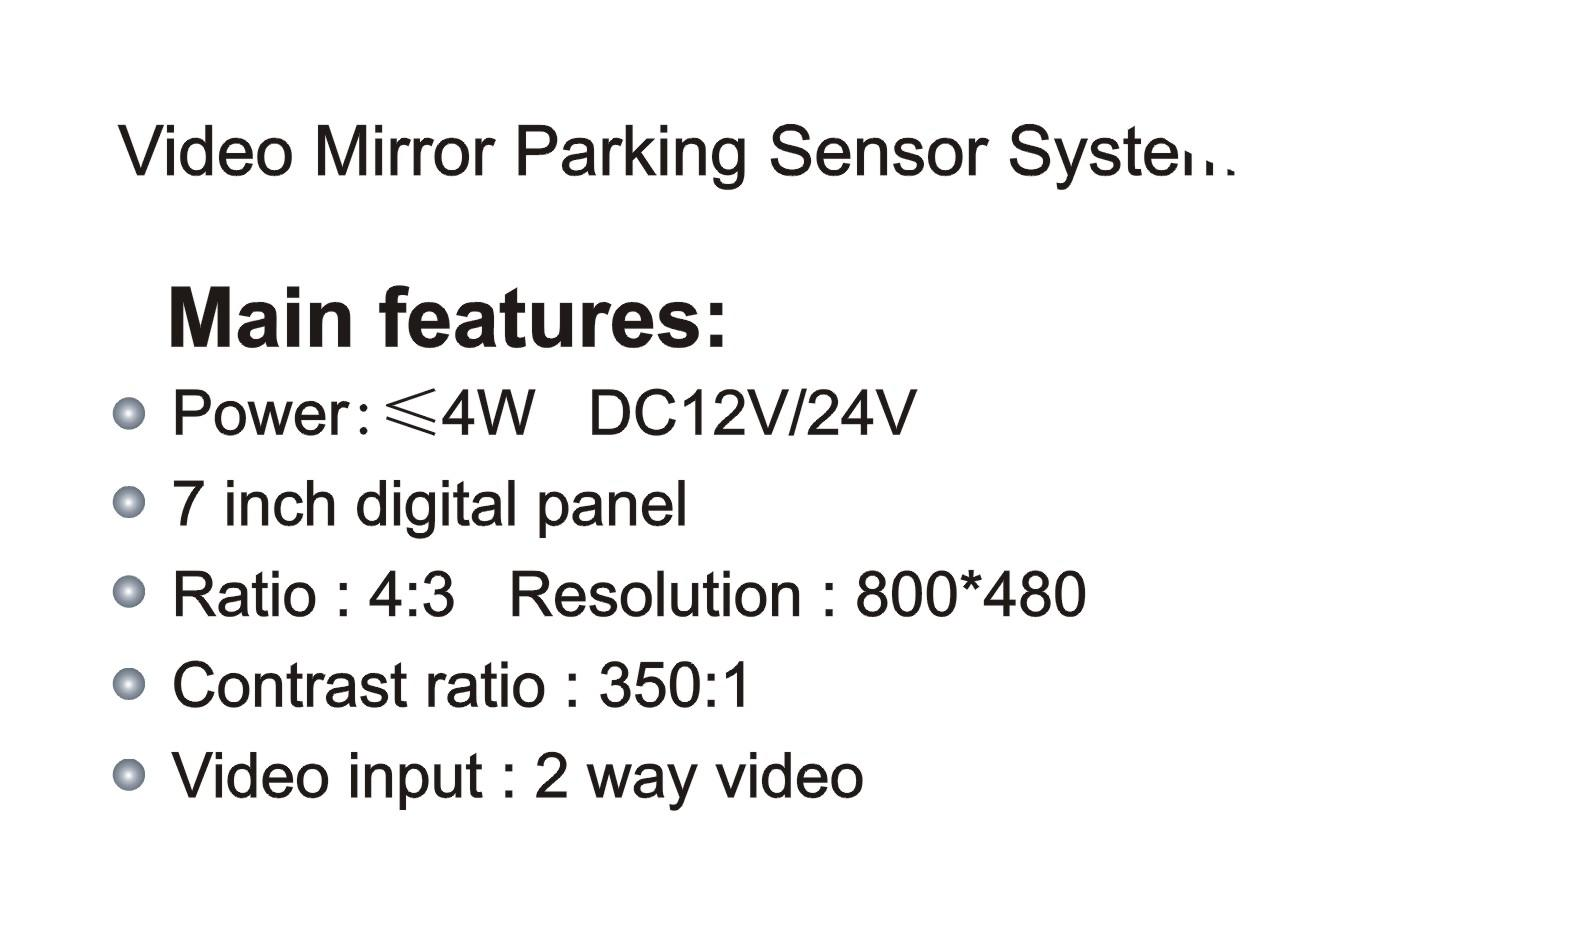 KC-6000M Video Mirror Parking Sensor System